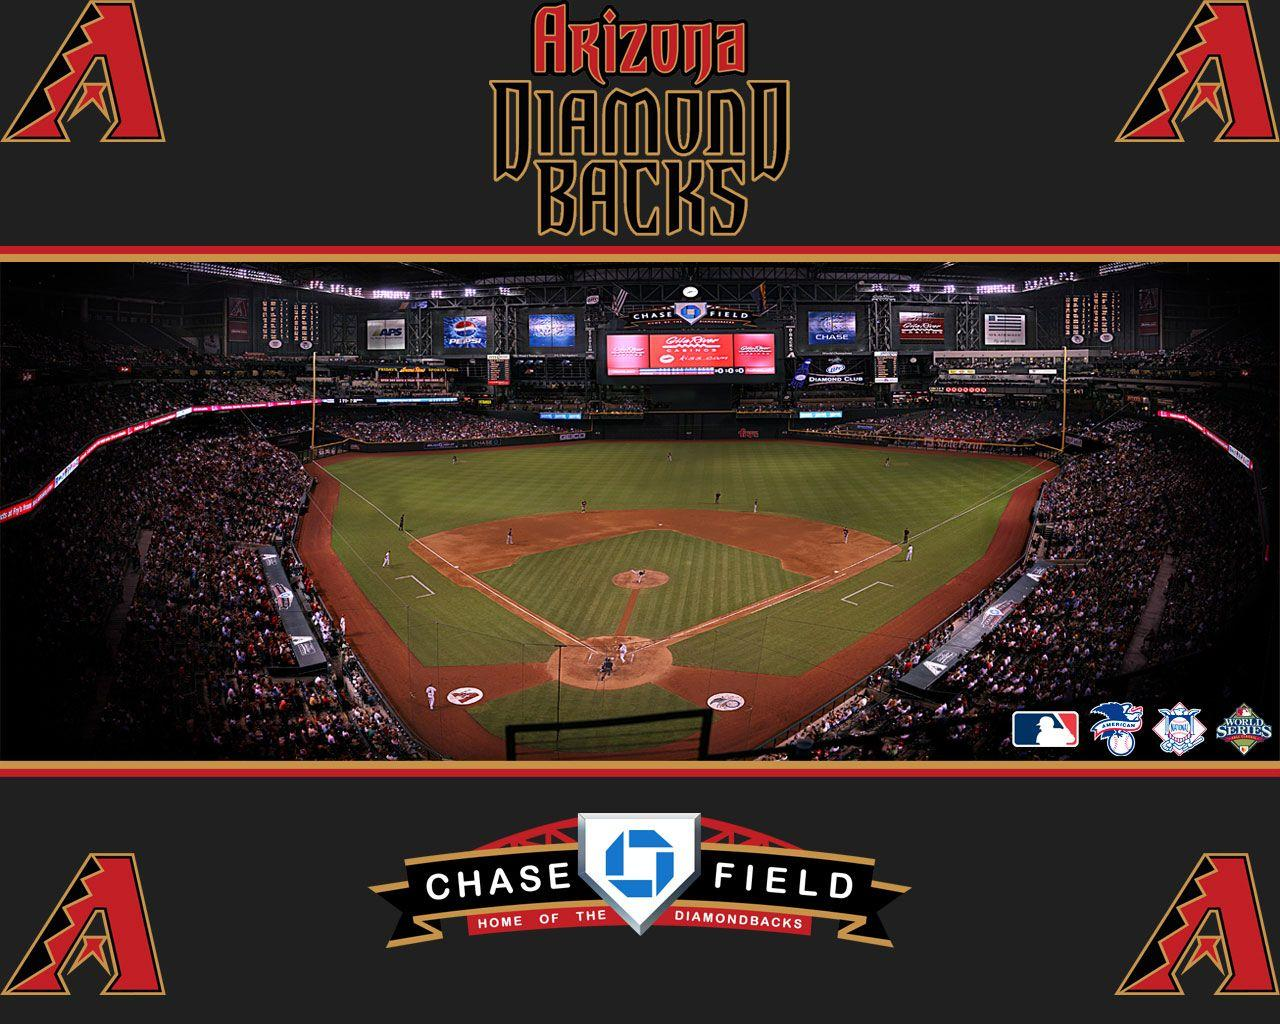 arizona diamondbacks wallpapers Image, Graphics, Comments and Pictures